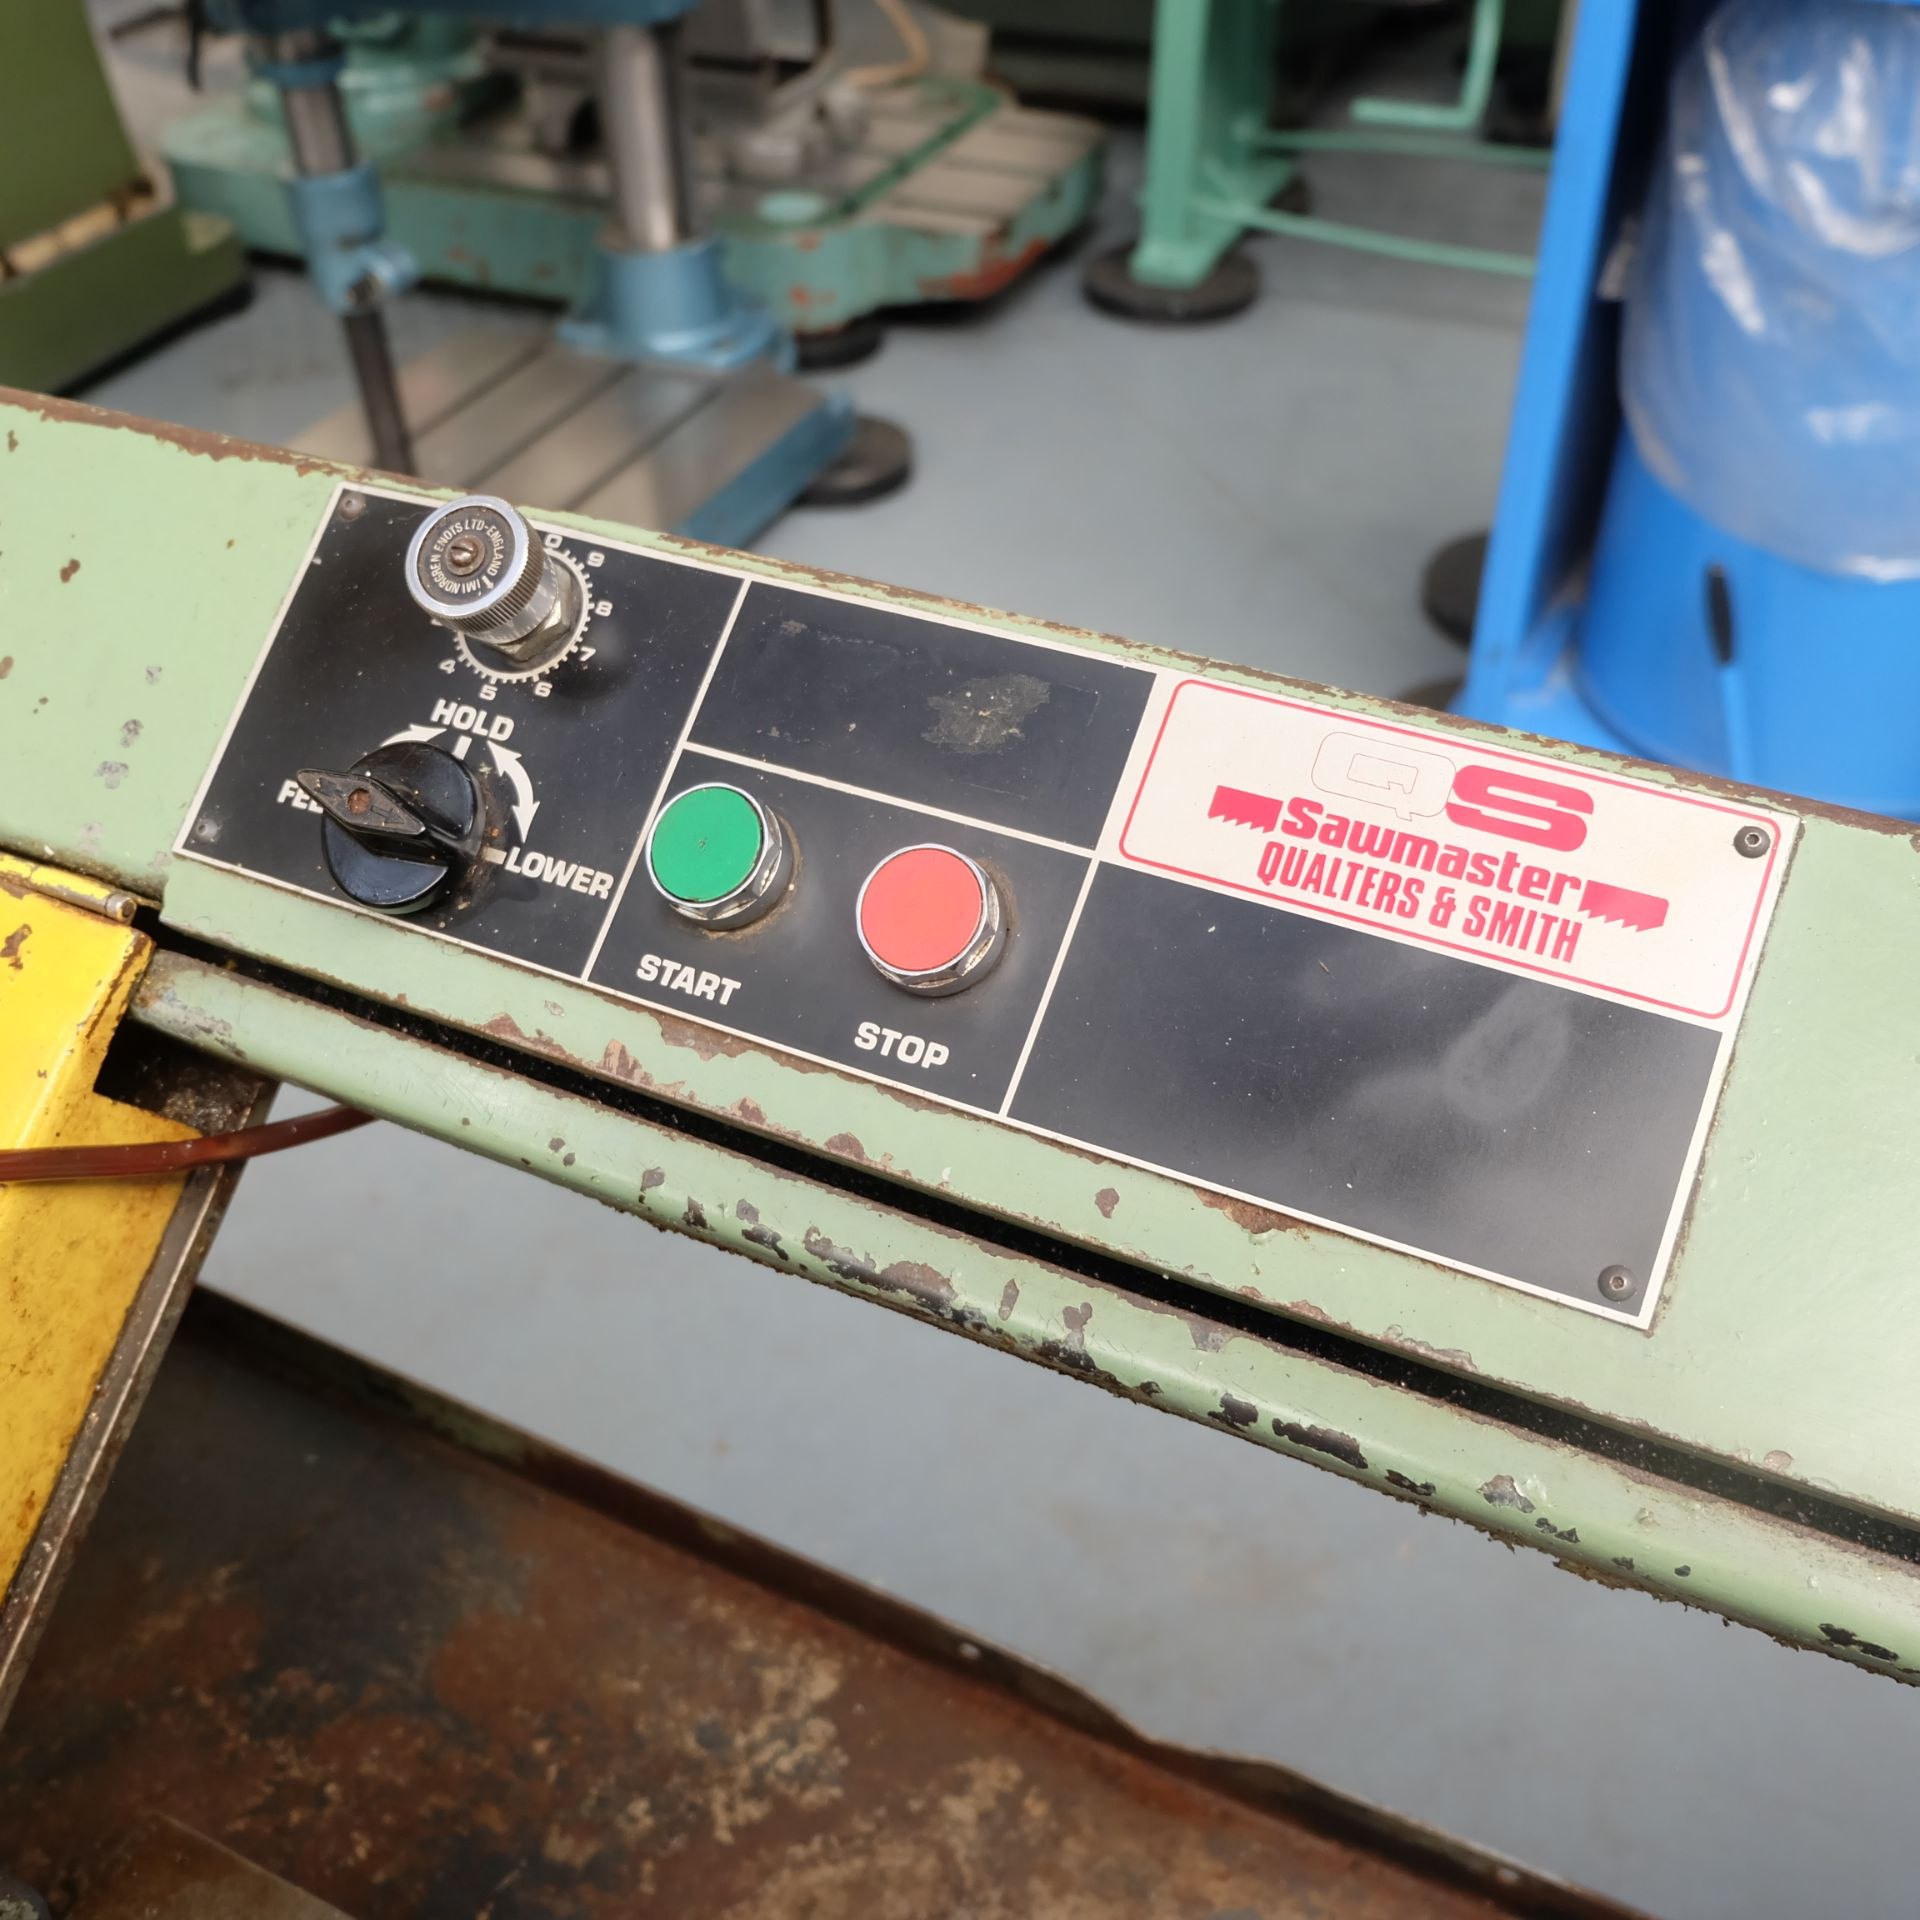 Qualters & Smith Model 180 Sawmaster Horizontal Bandsaw. Capacity Approx 180mm. - Image 5 of 5